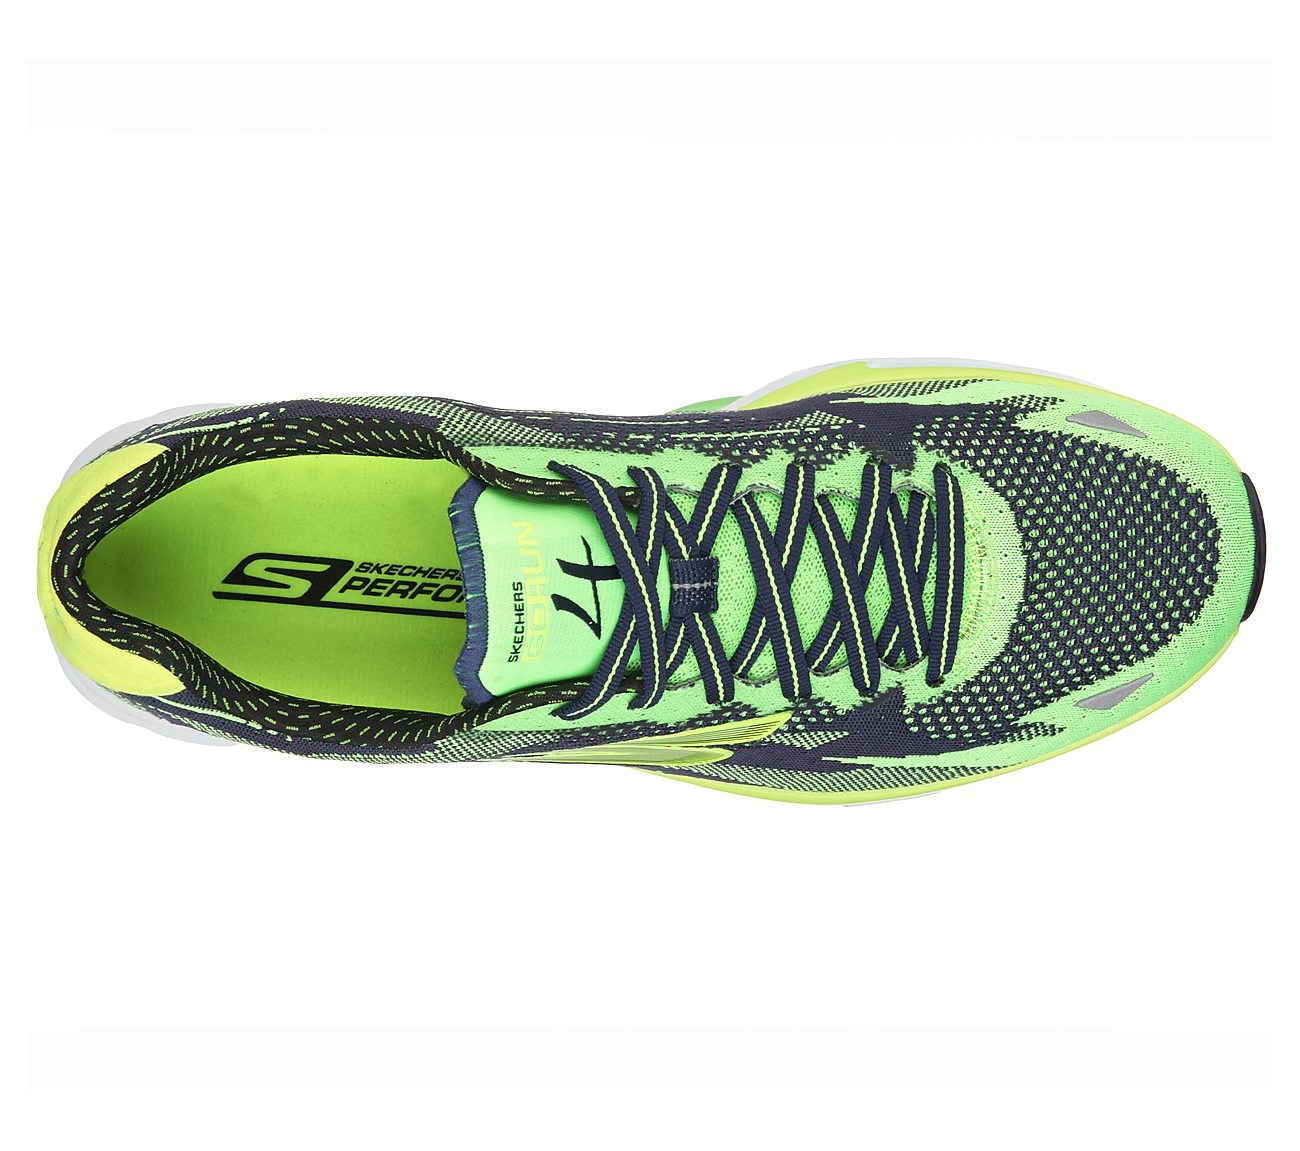 Skechers Gorun 4 2018 Performance Shoes Only 69 00